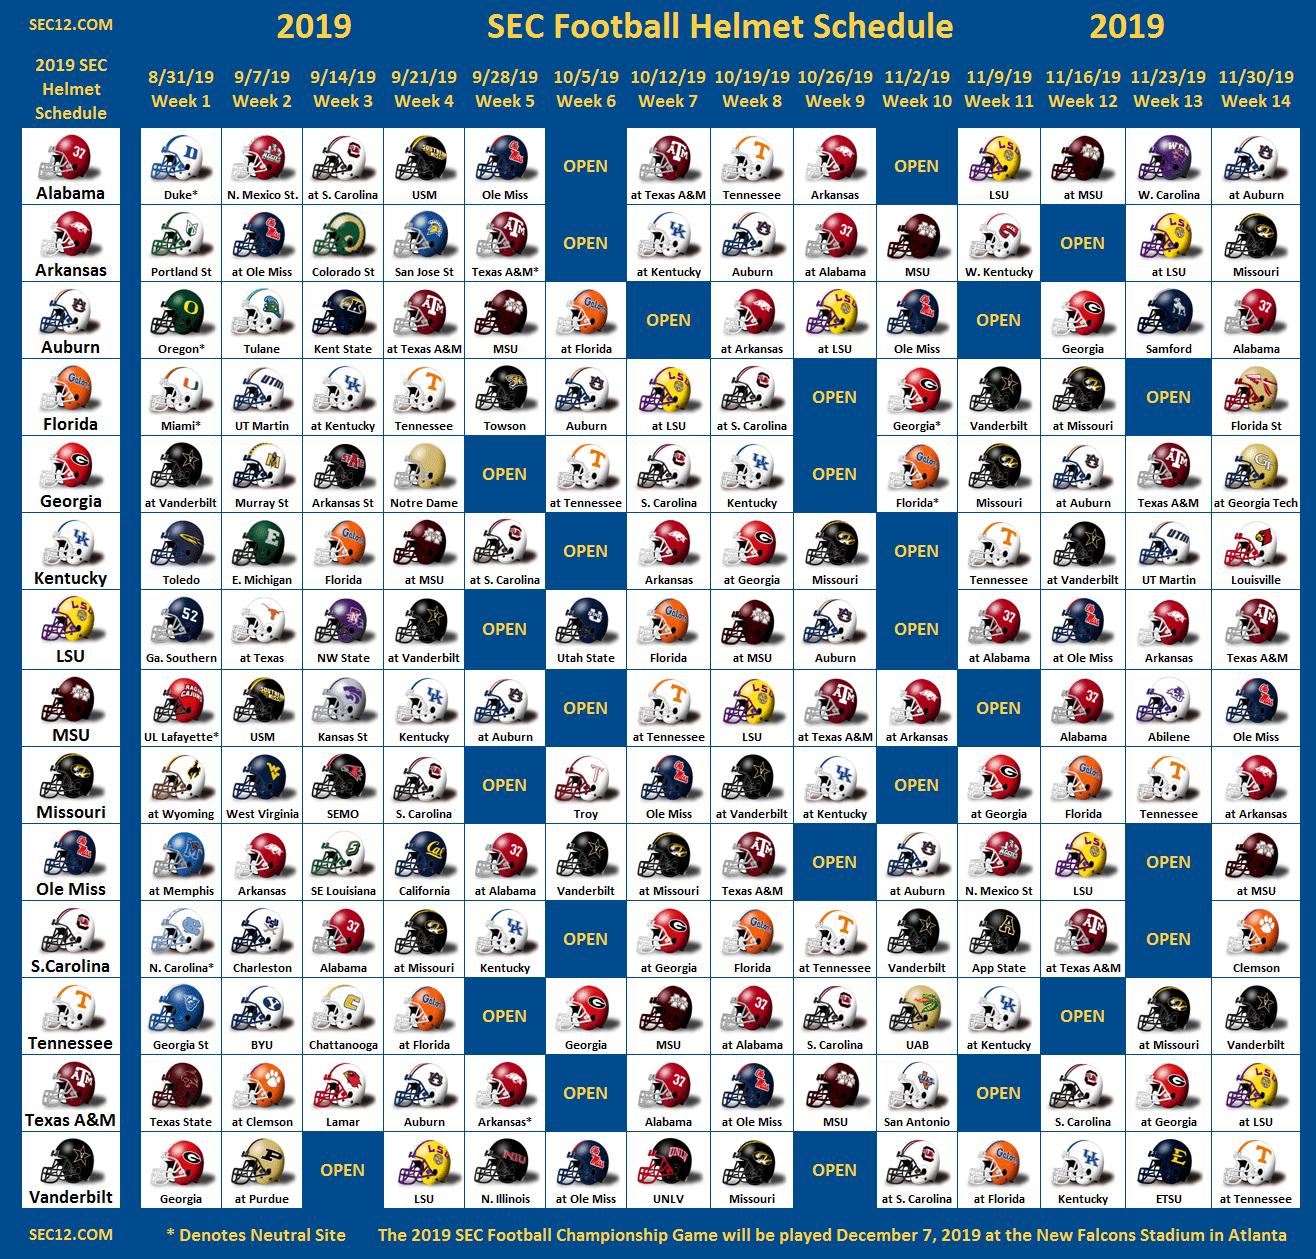 2019 SEC Football Helmet Schedule